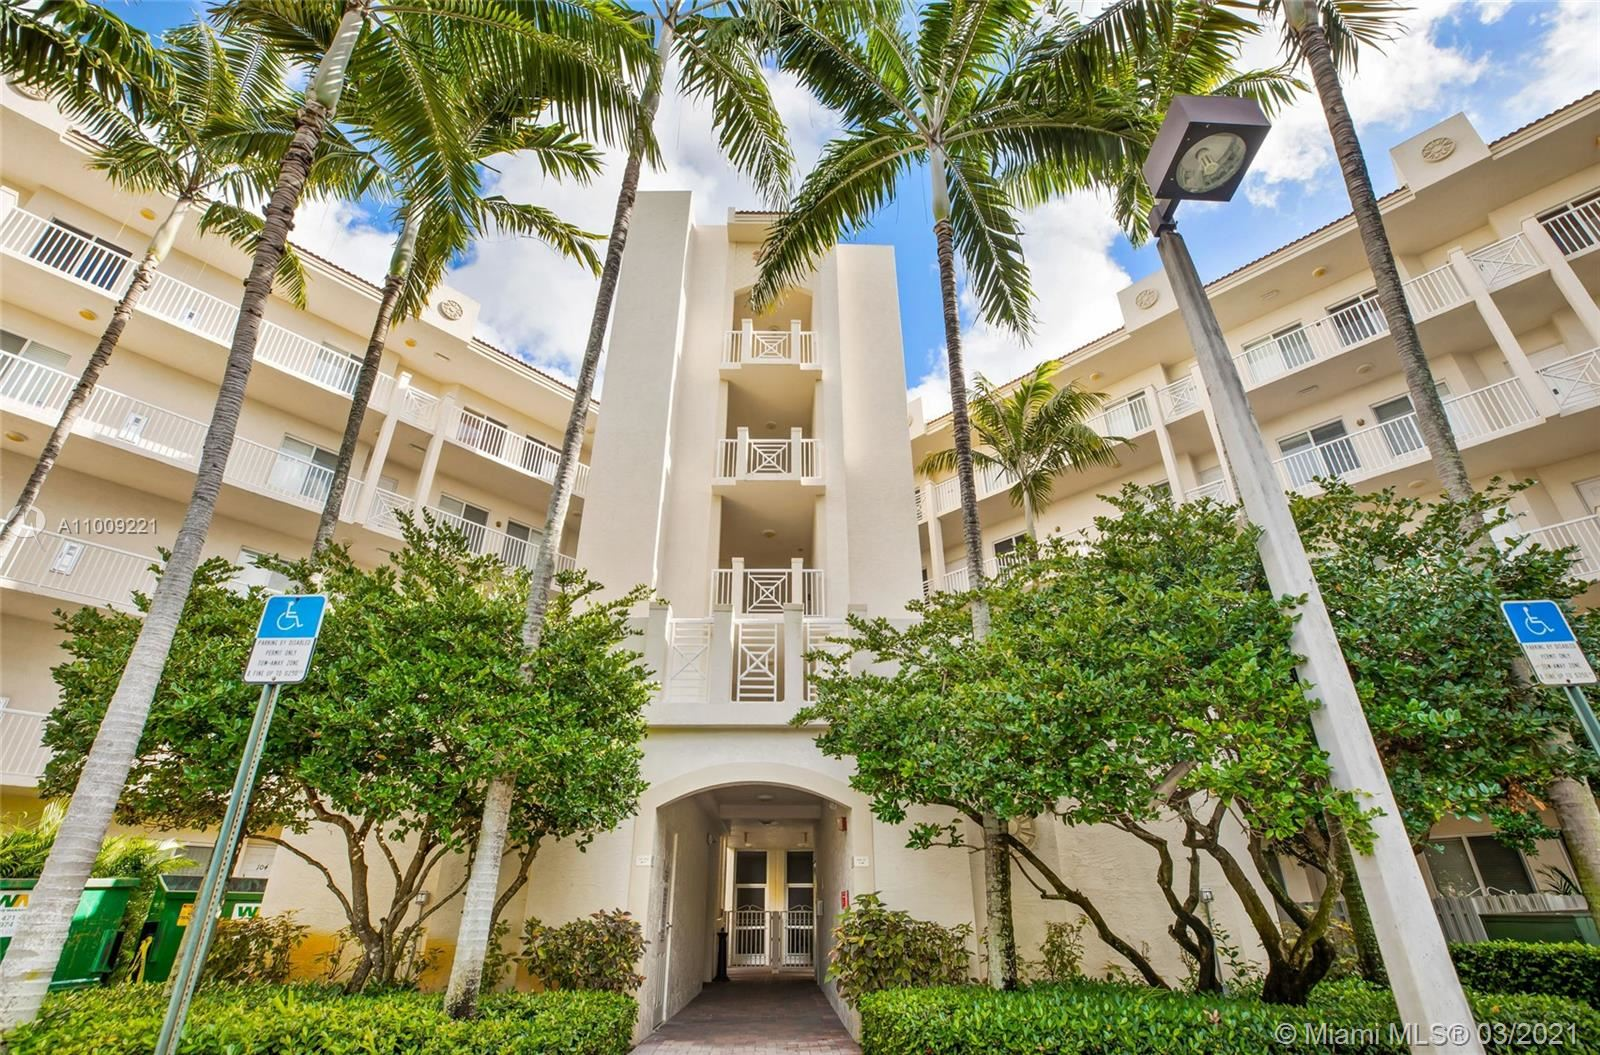 Photo of 3600 Oaks Clubhouse Dr #305, Pompano Beach, FL 33069 (MLS # A11009221)